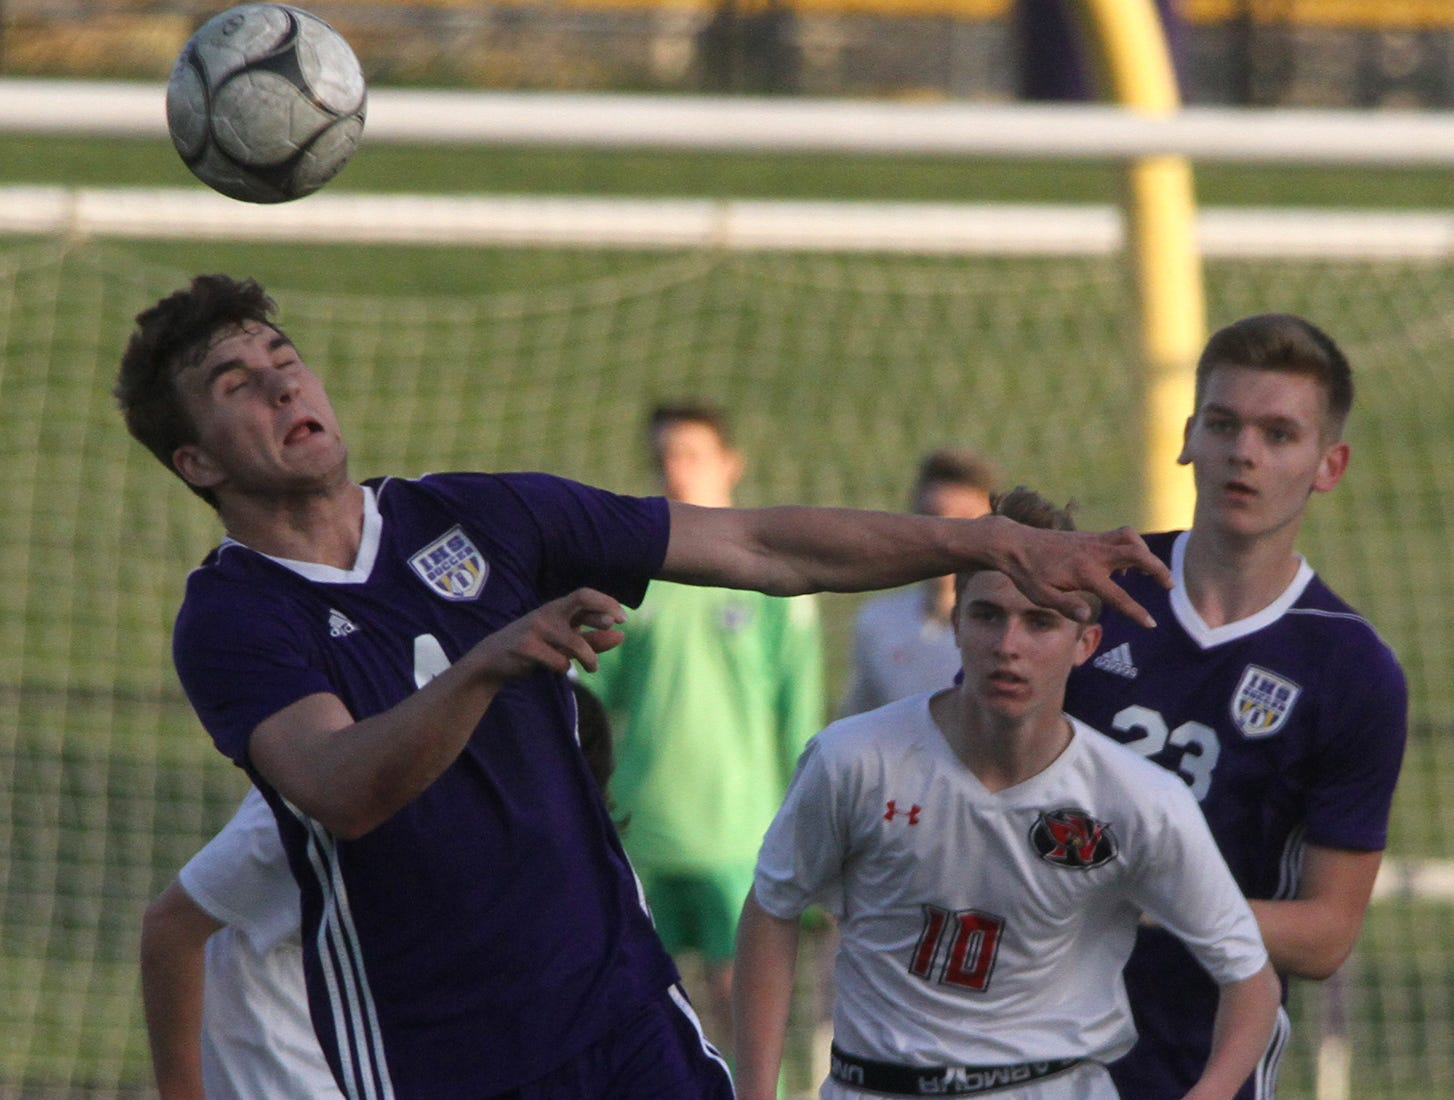 Indianola junior Carter Bussanmas heads the ball. Indianola beat Newton 2-0 at home in a Little Hawkeye Conference game.